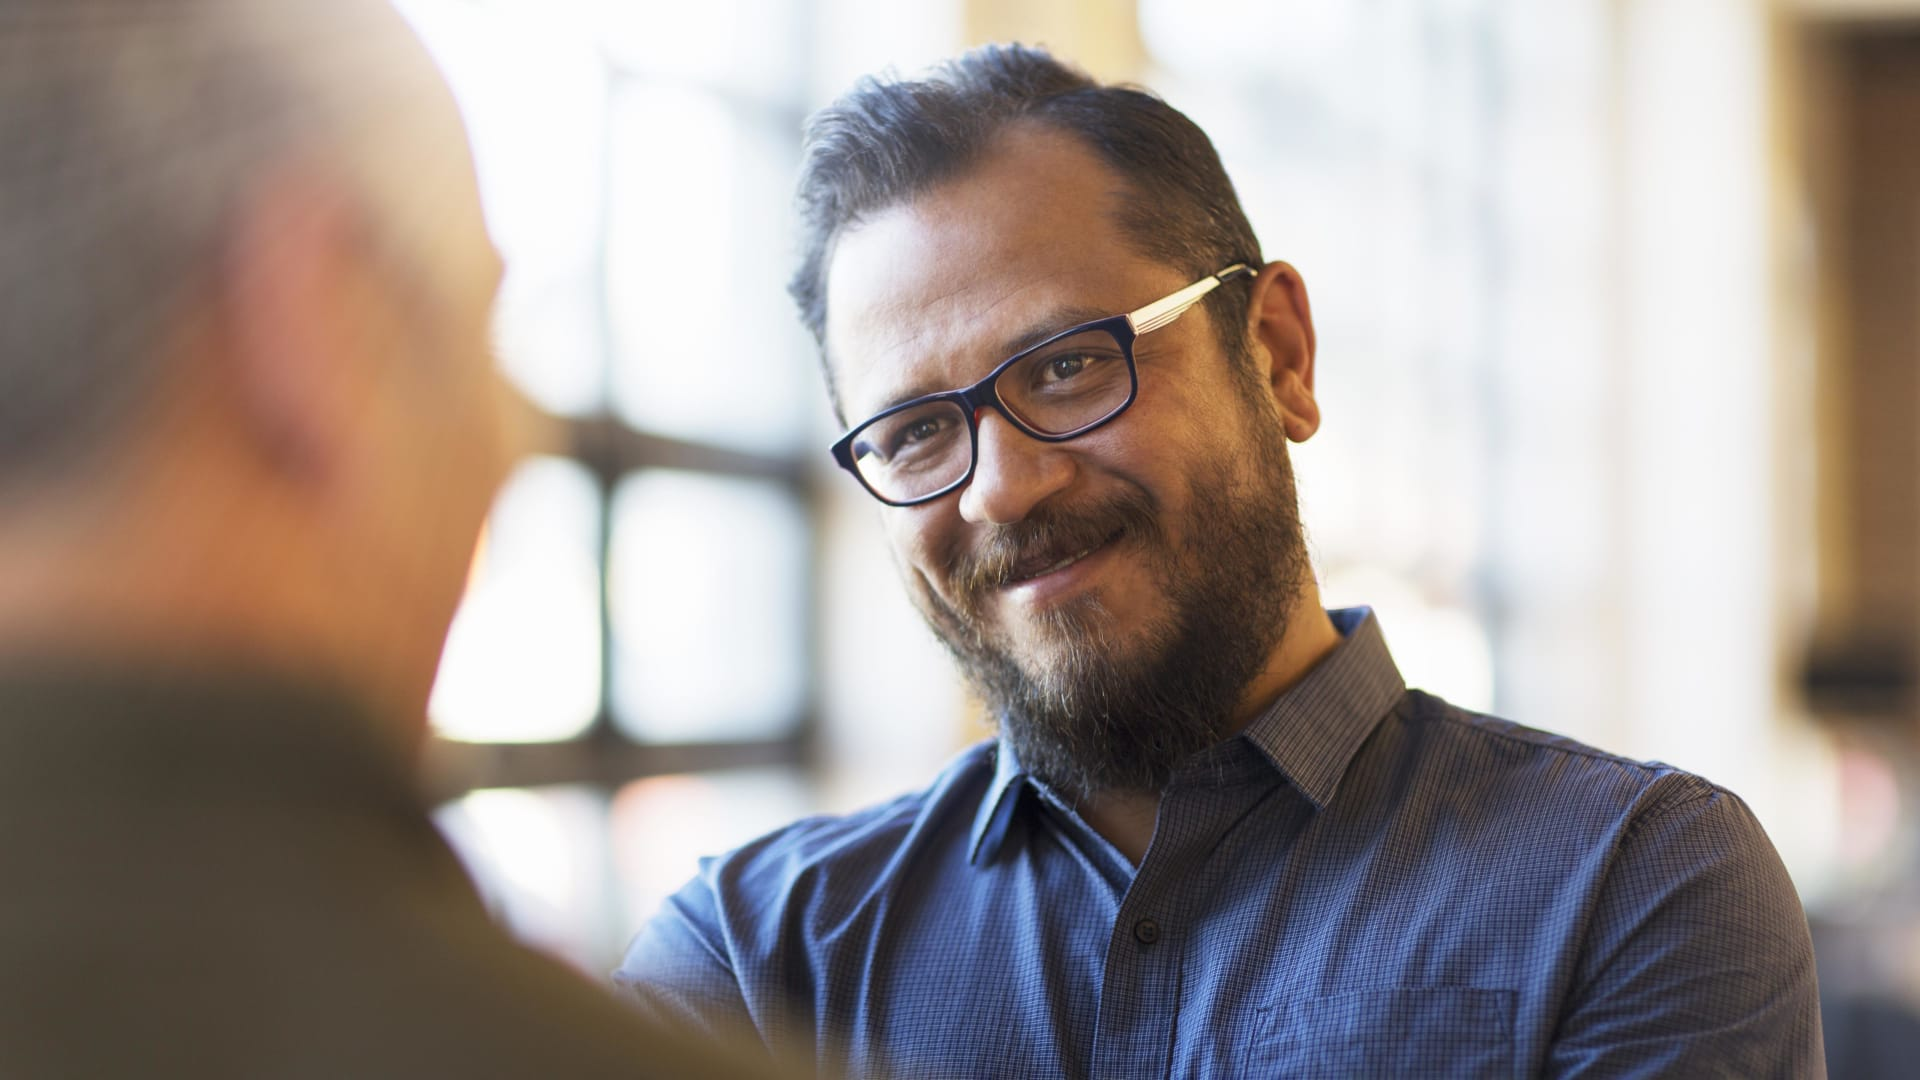 4 Leadership Strategies to Improve Mental Health in the Workplace